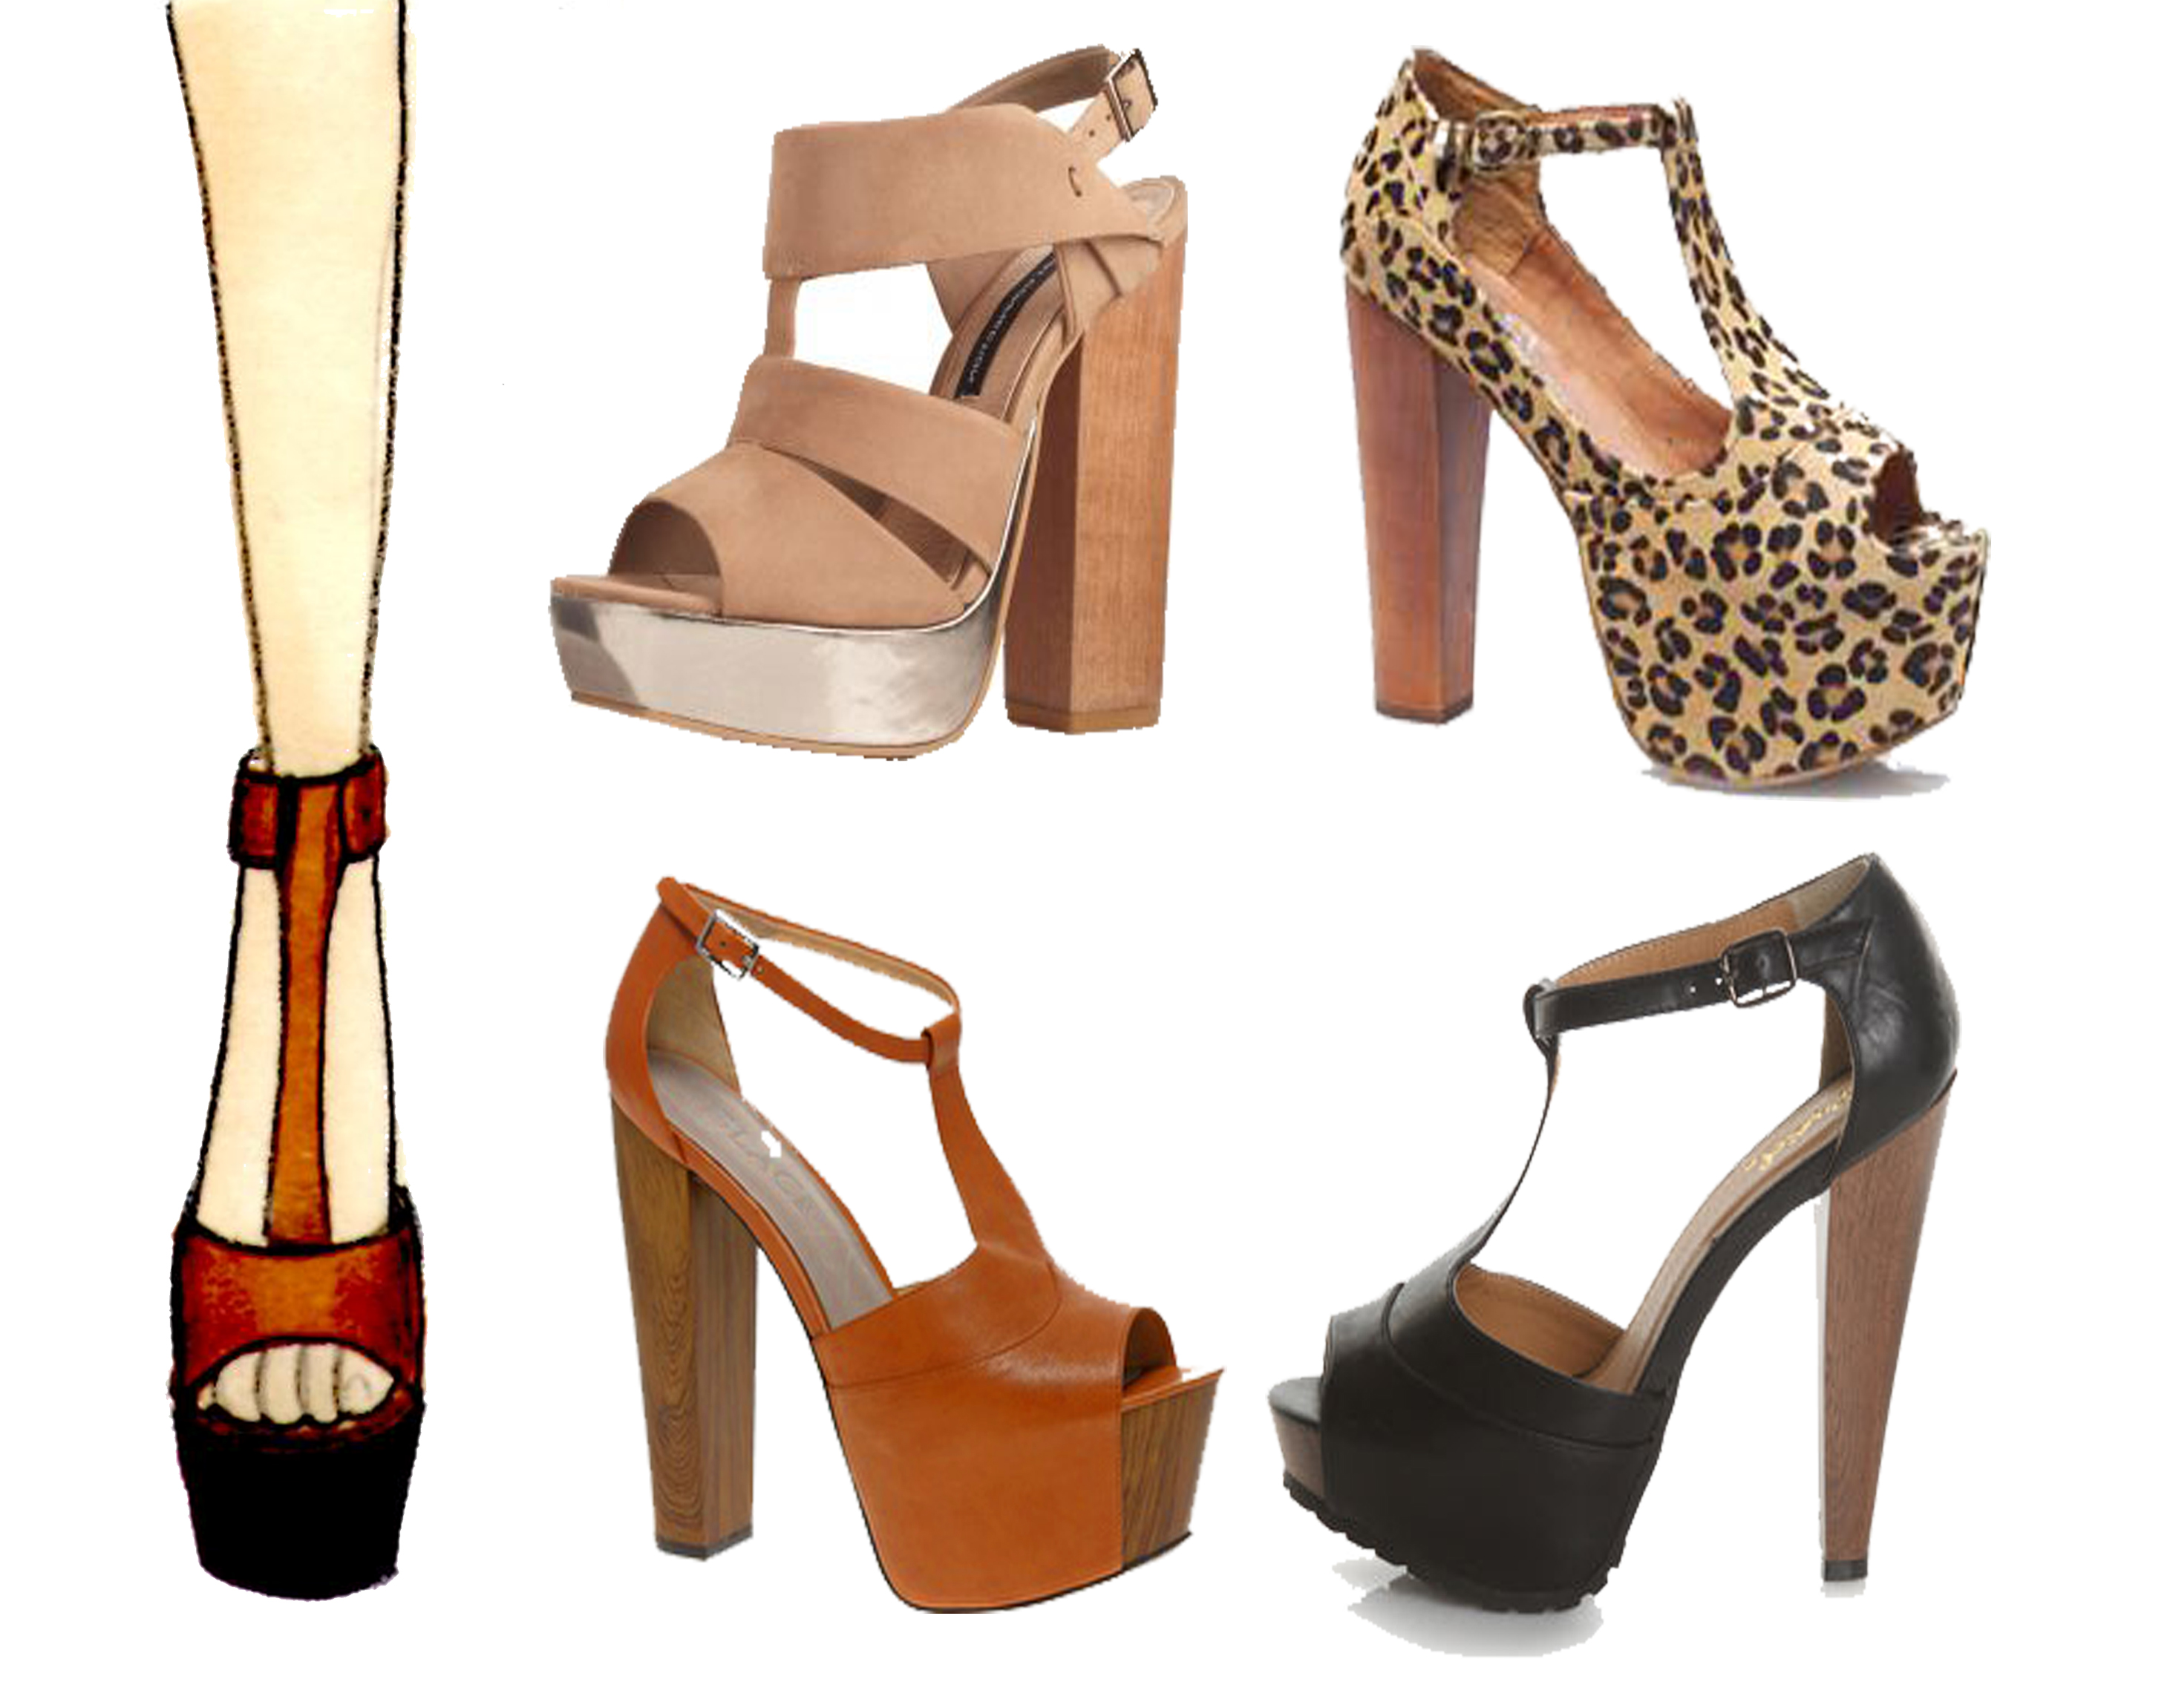 Chunky Wooden Heels - Is Heel